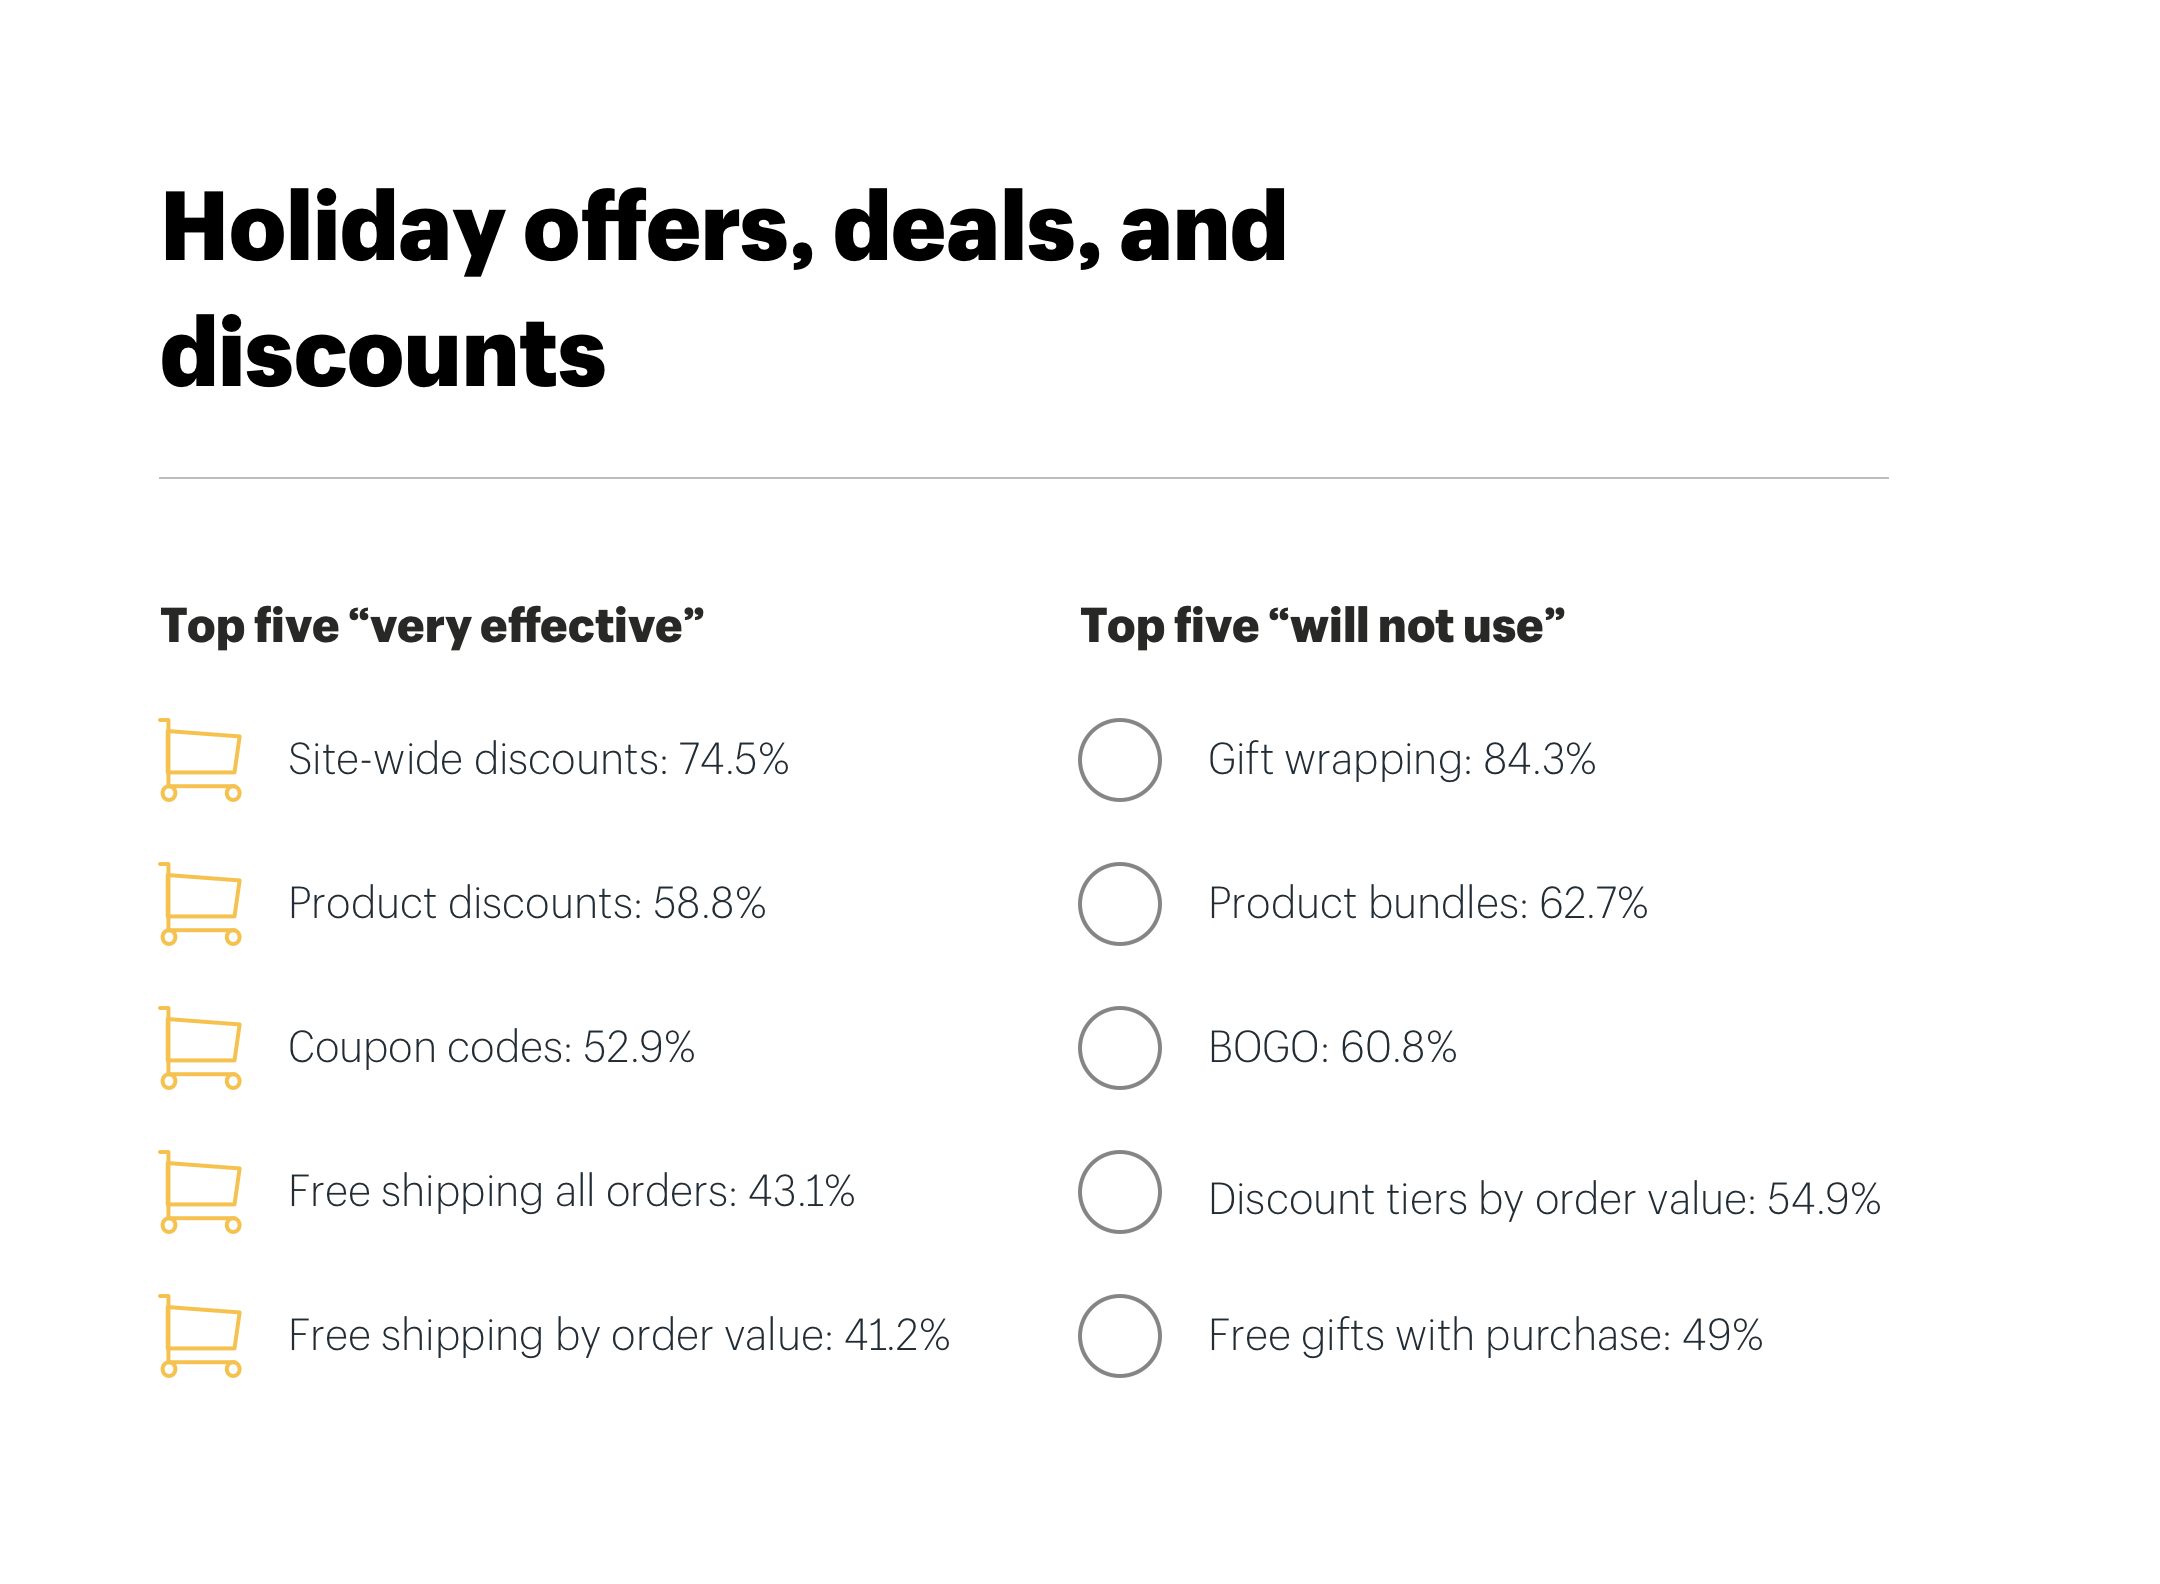 Holiday ecommerce offers, deals, and discounts ranked